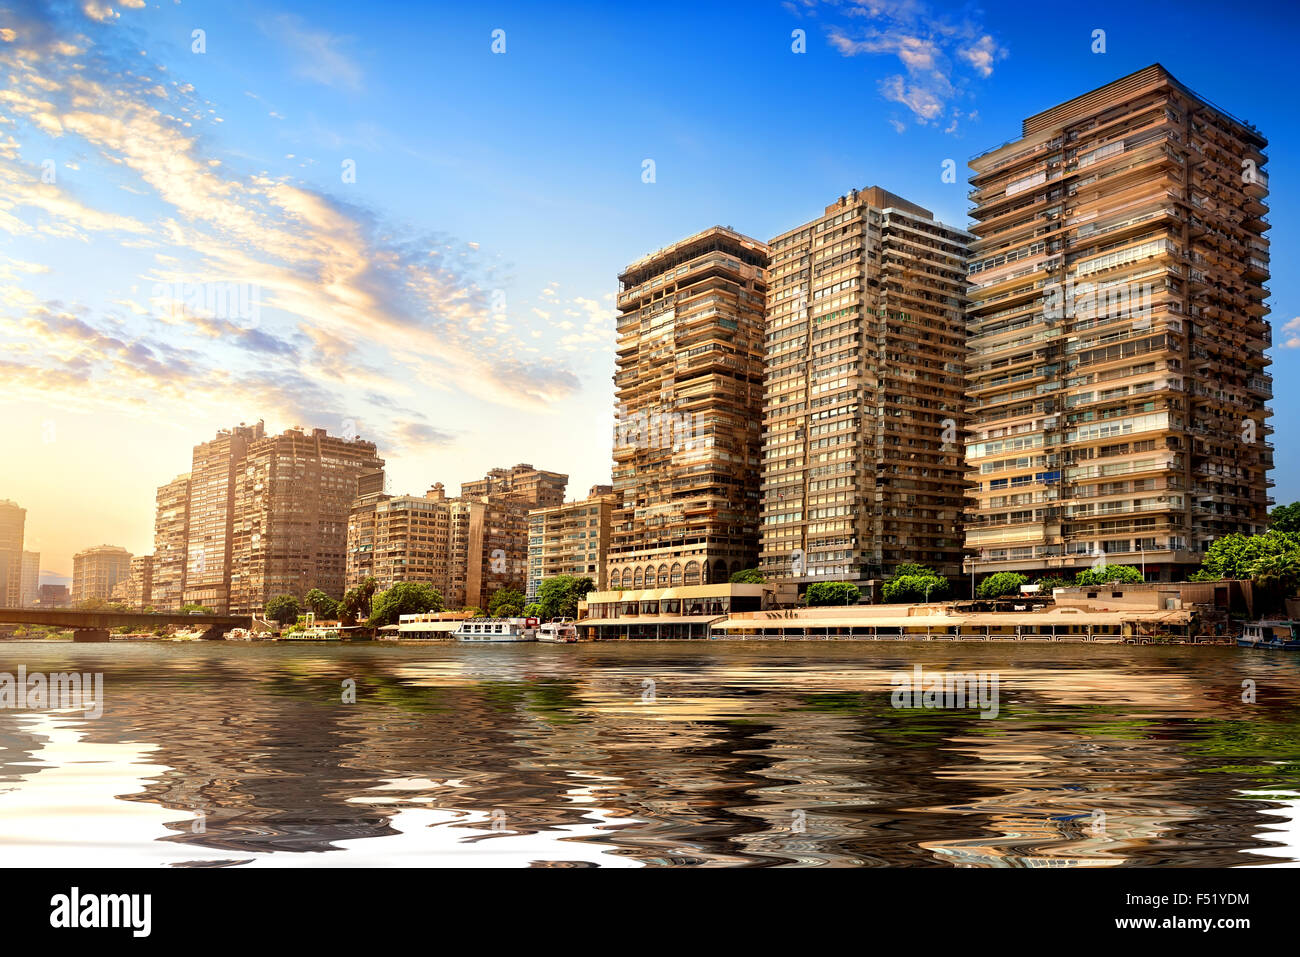 Buildings of Cairo on the bank of Nile - Stock Image